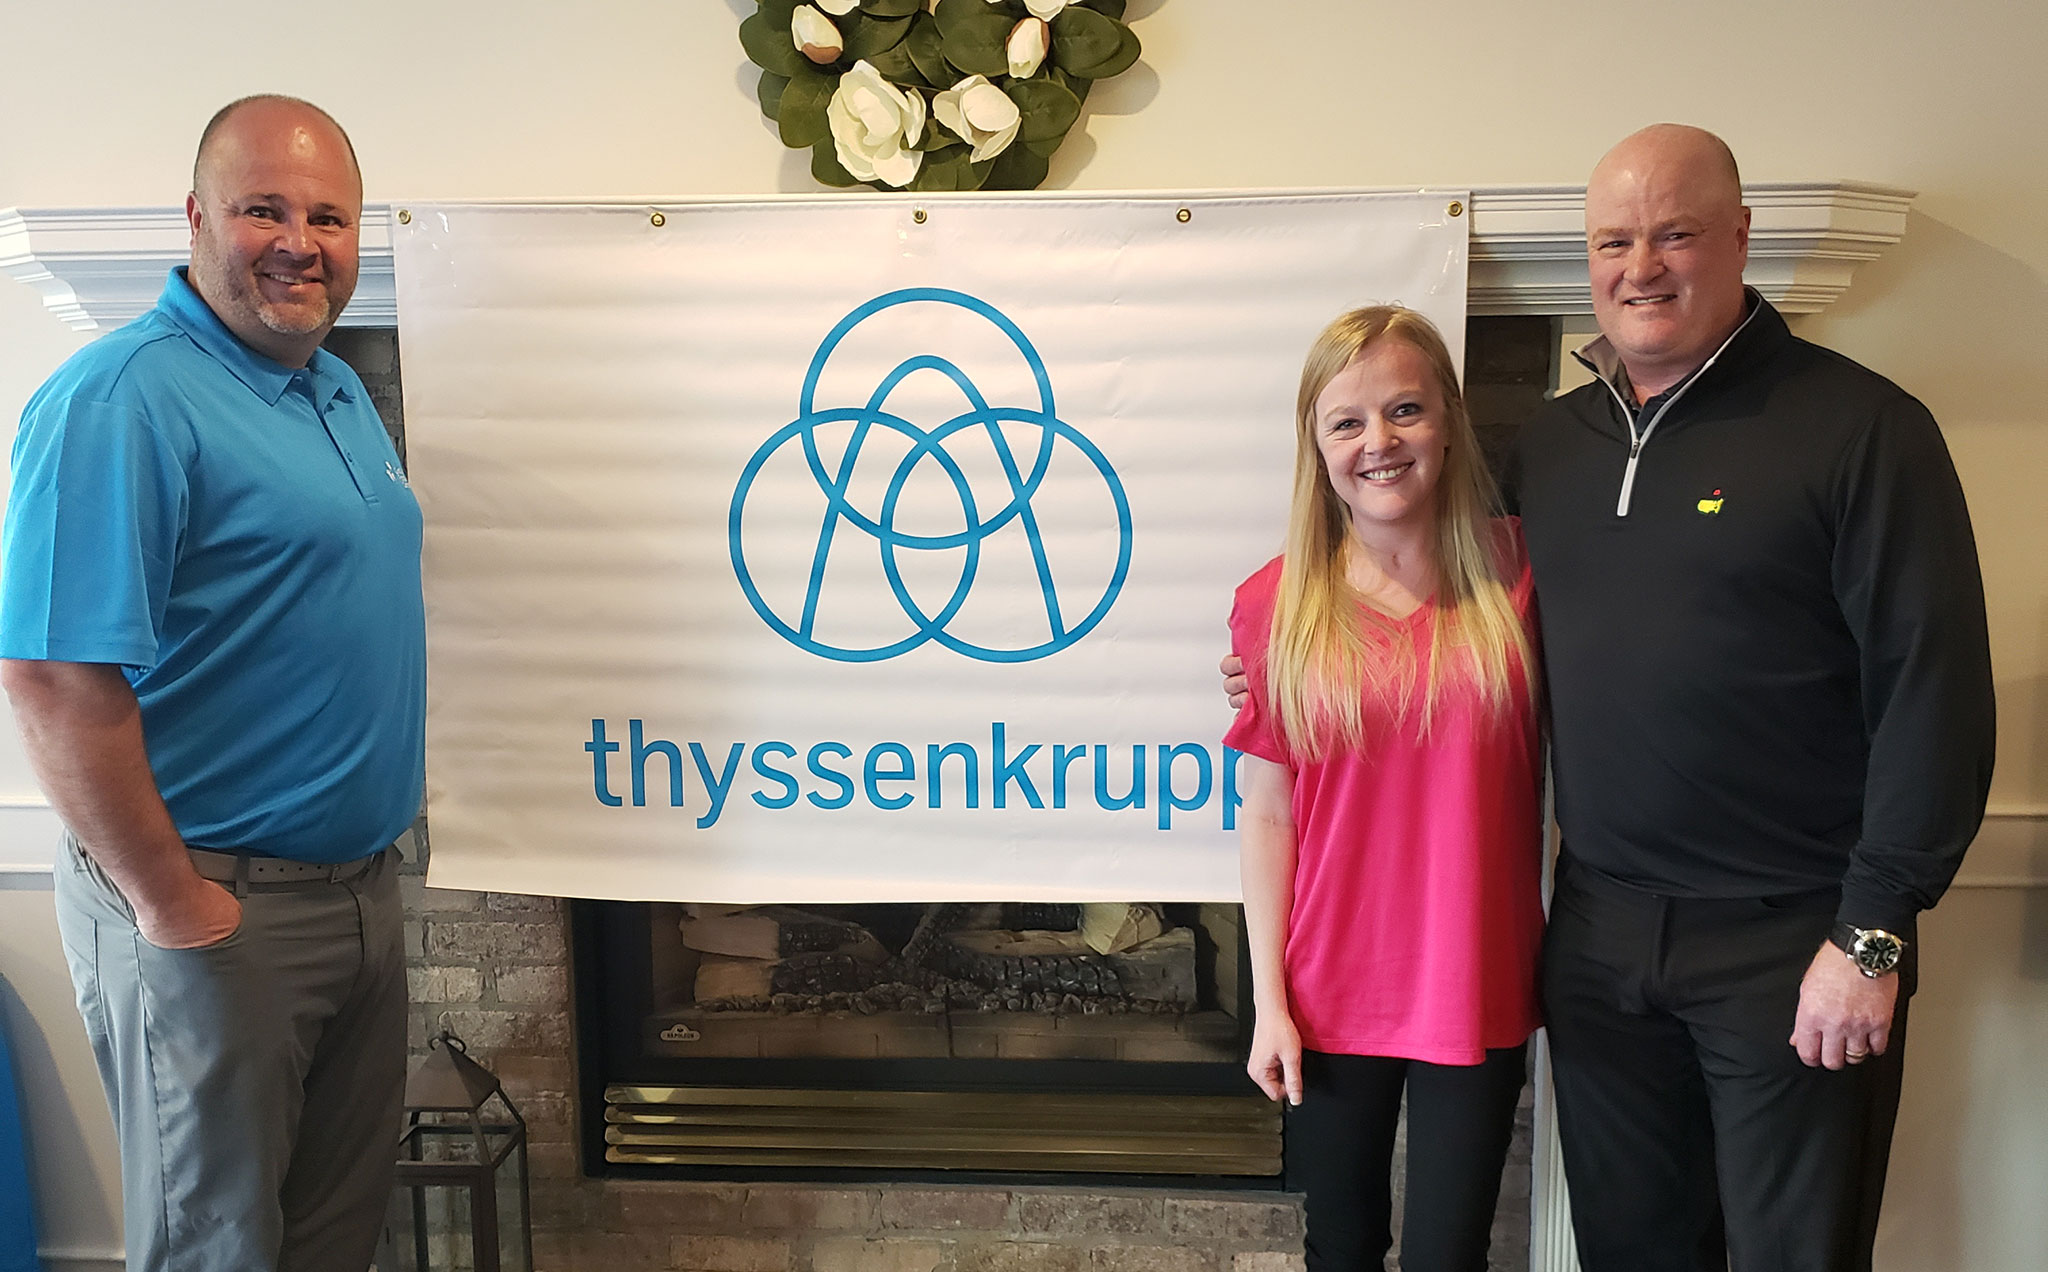 At thyssenkrupp, Meaghan Addante found not only a new employer but a second family